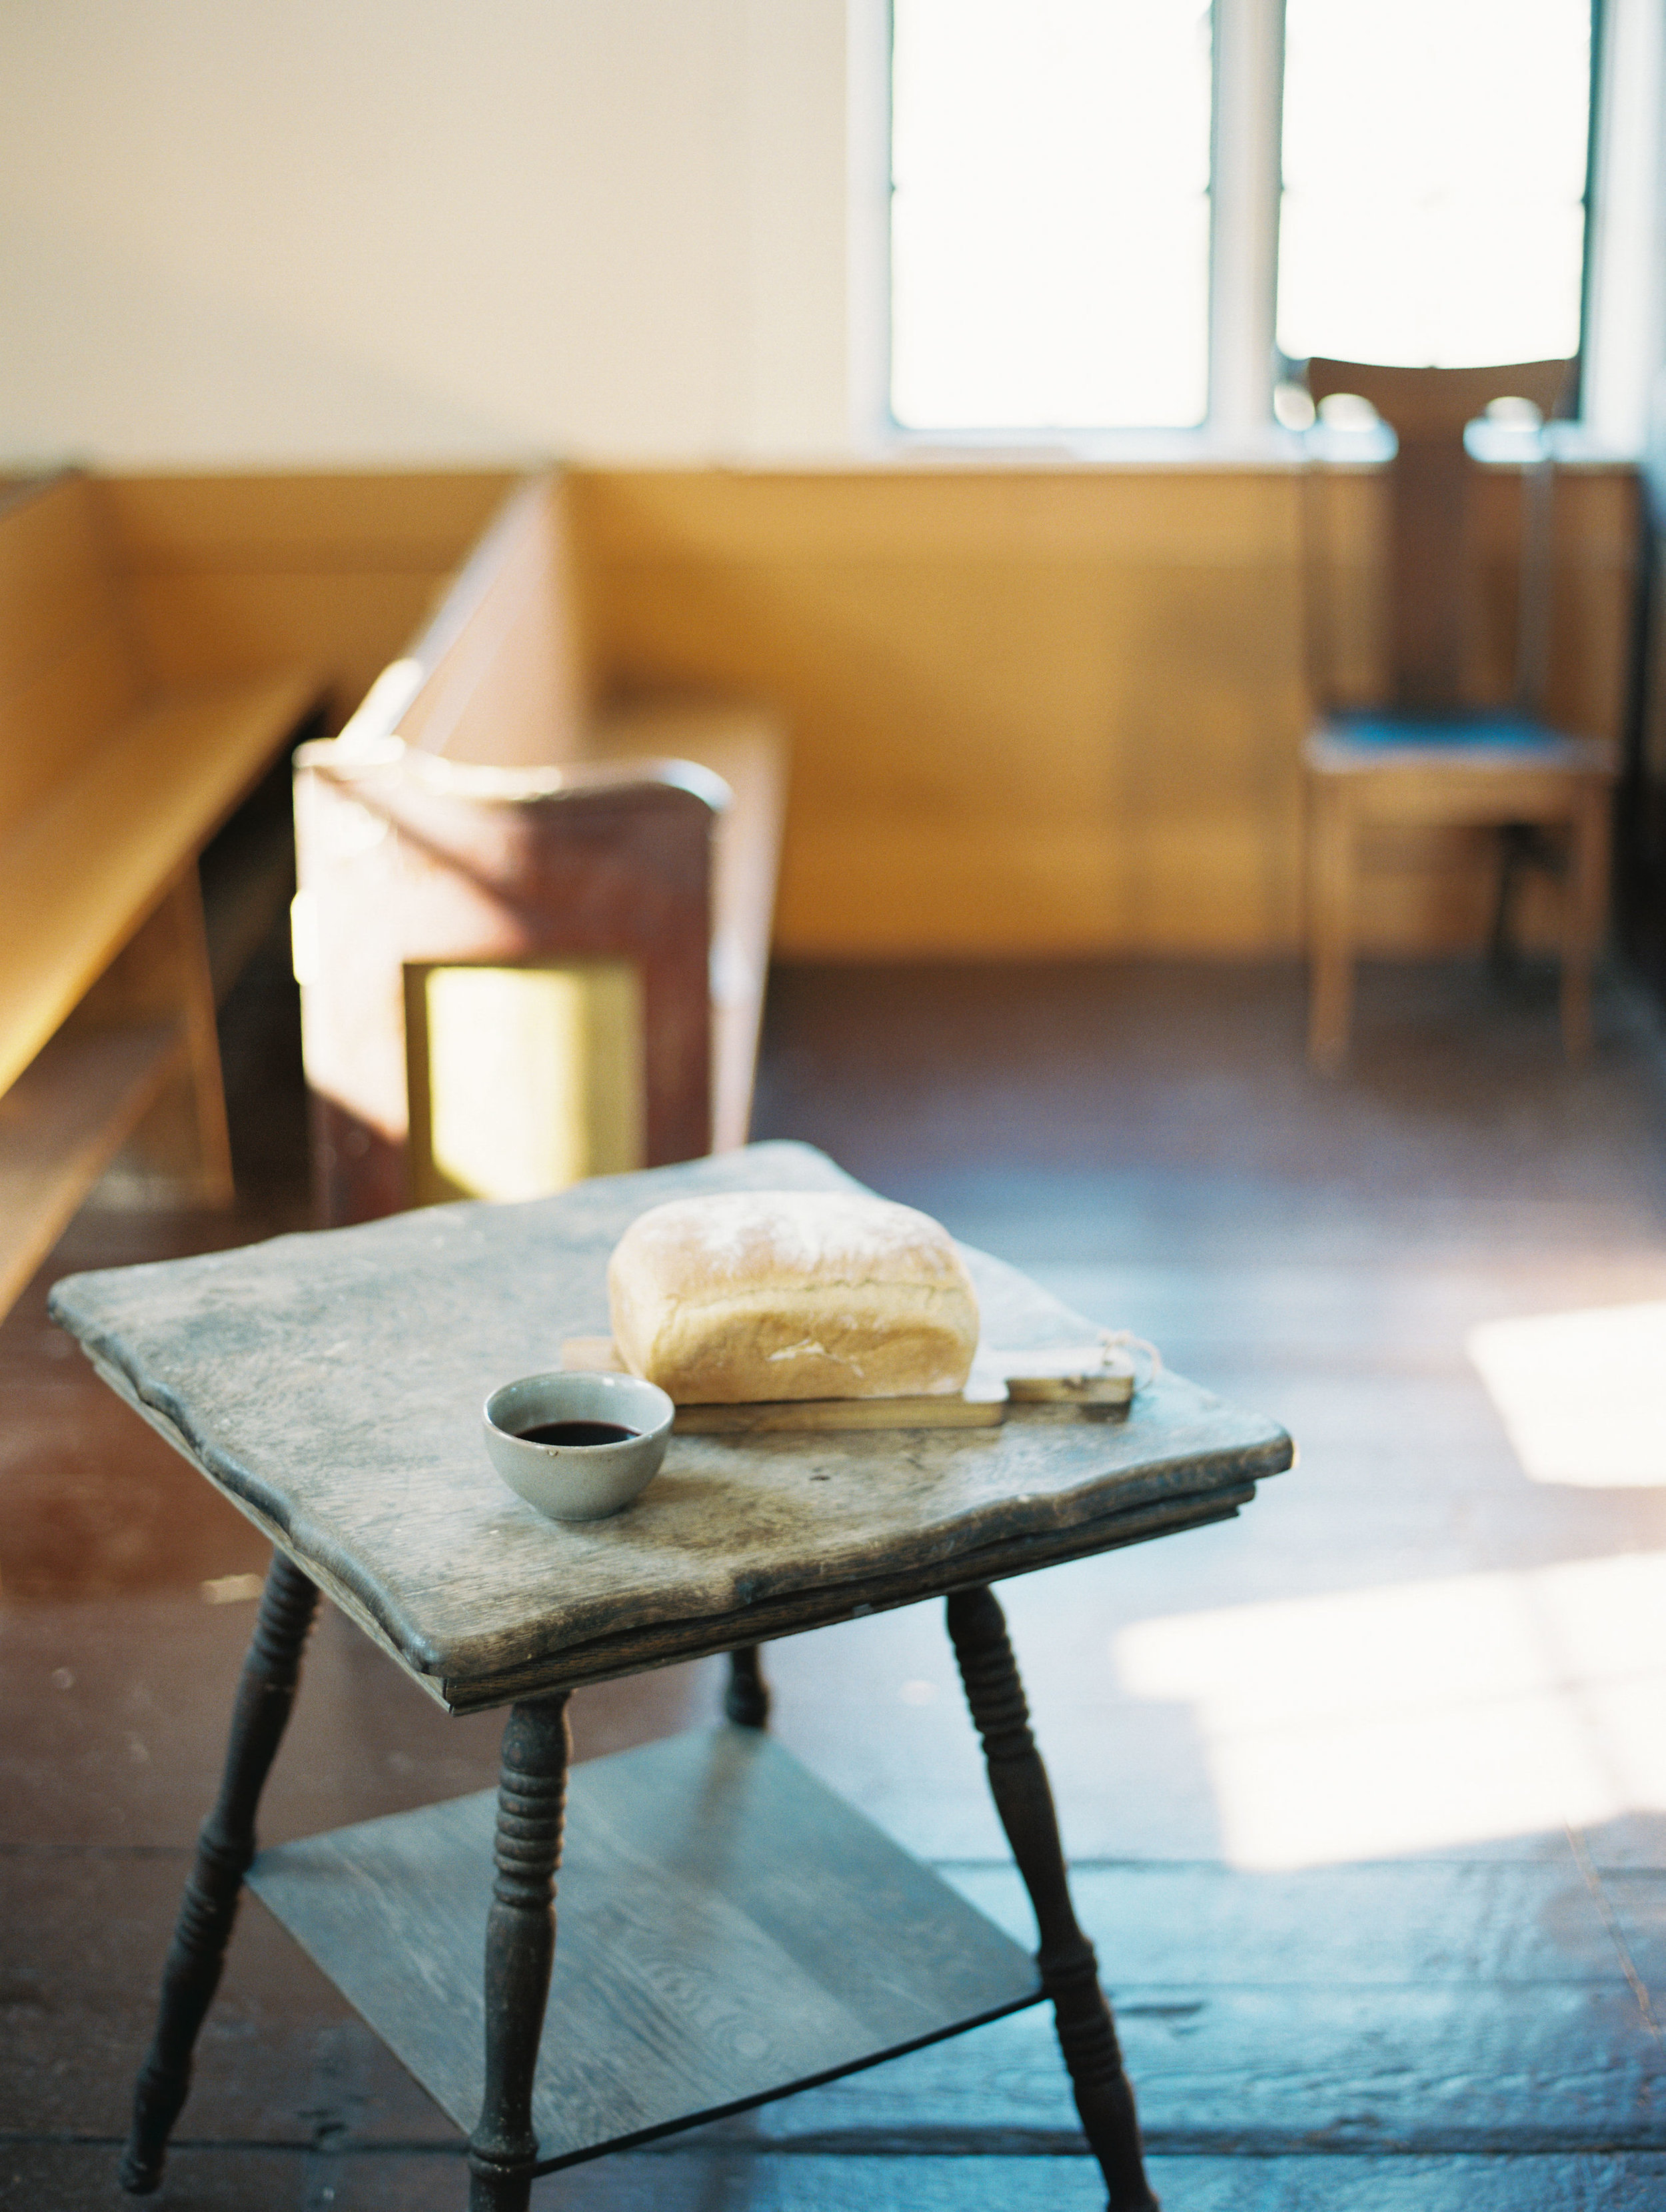 Rustic communion table for the wedding ceremony